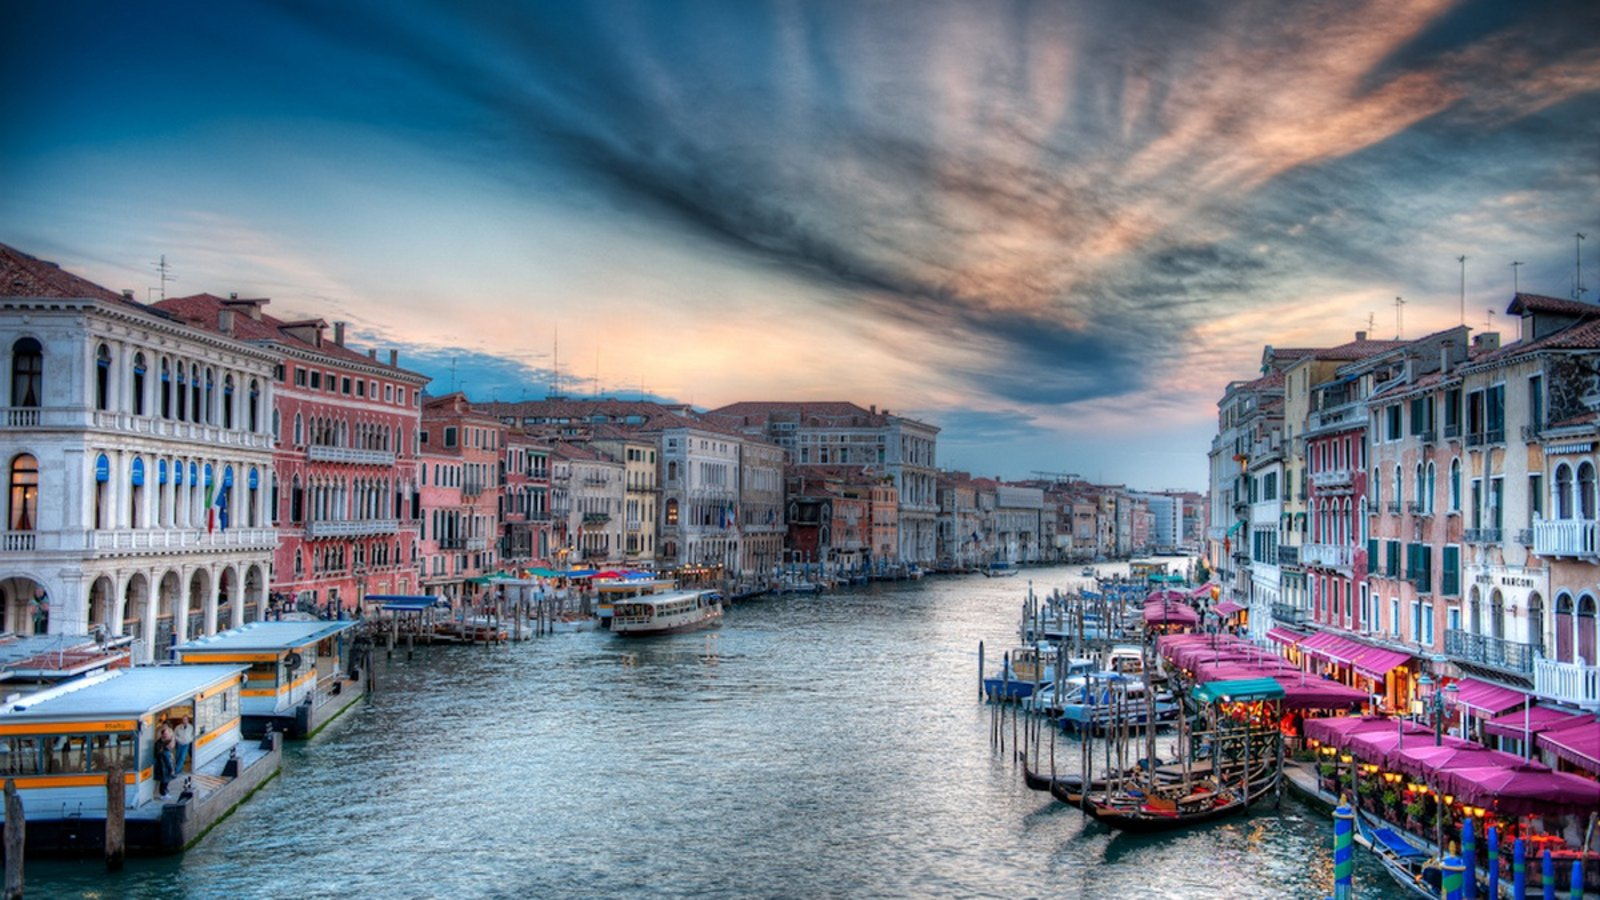 venice wallpaper hd 1600x900 492893